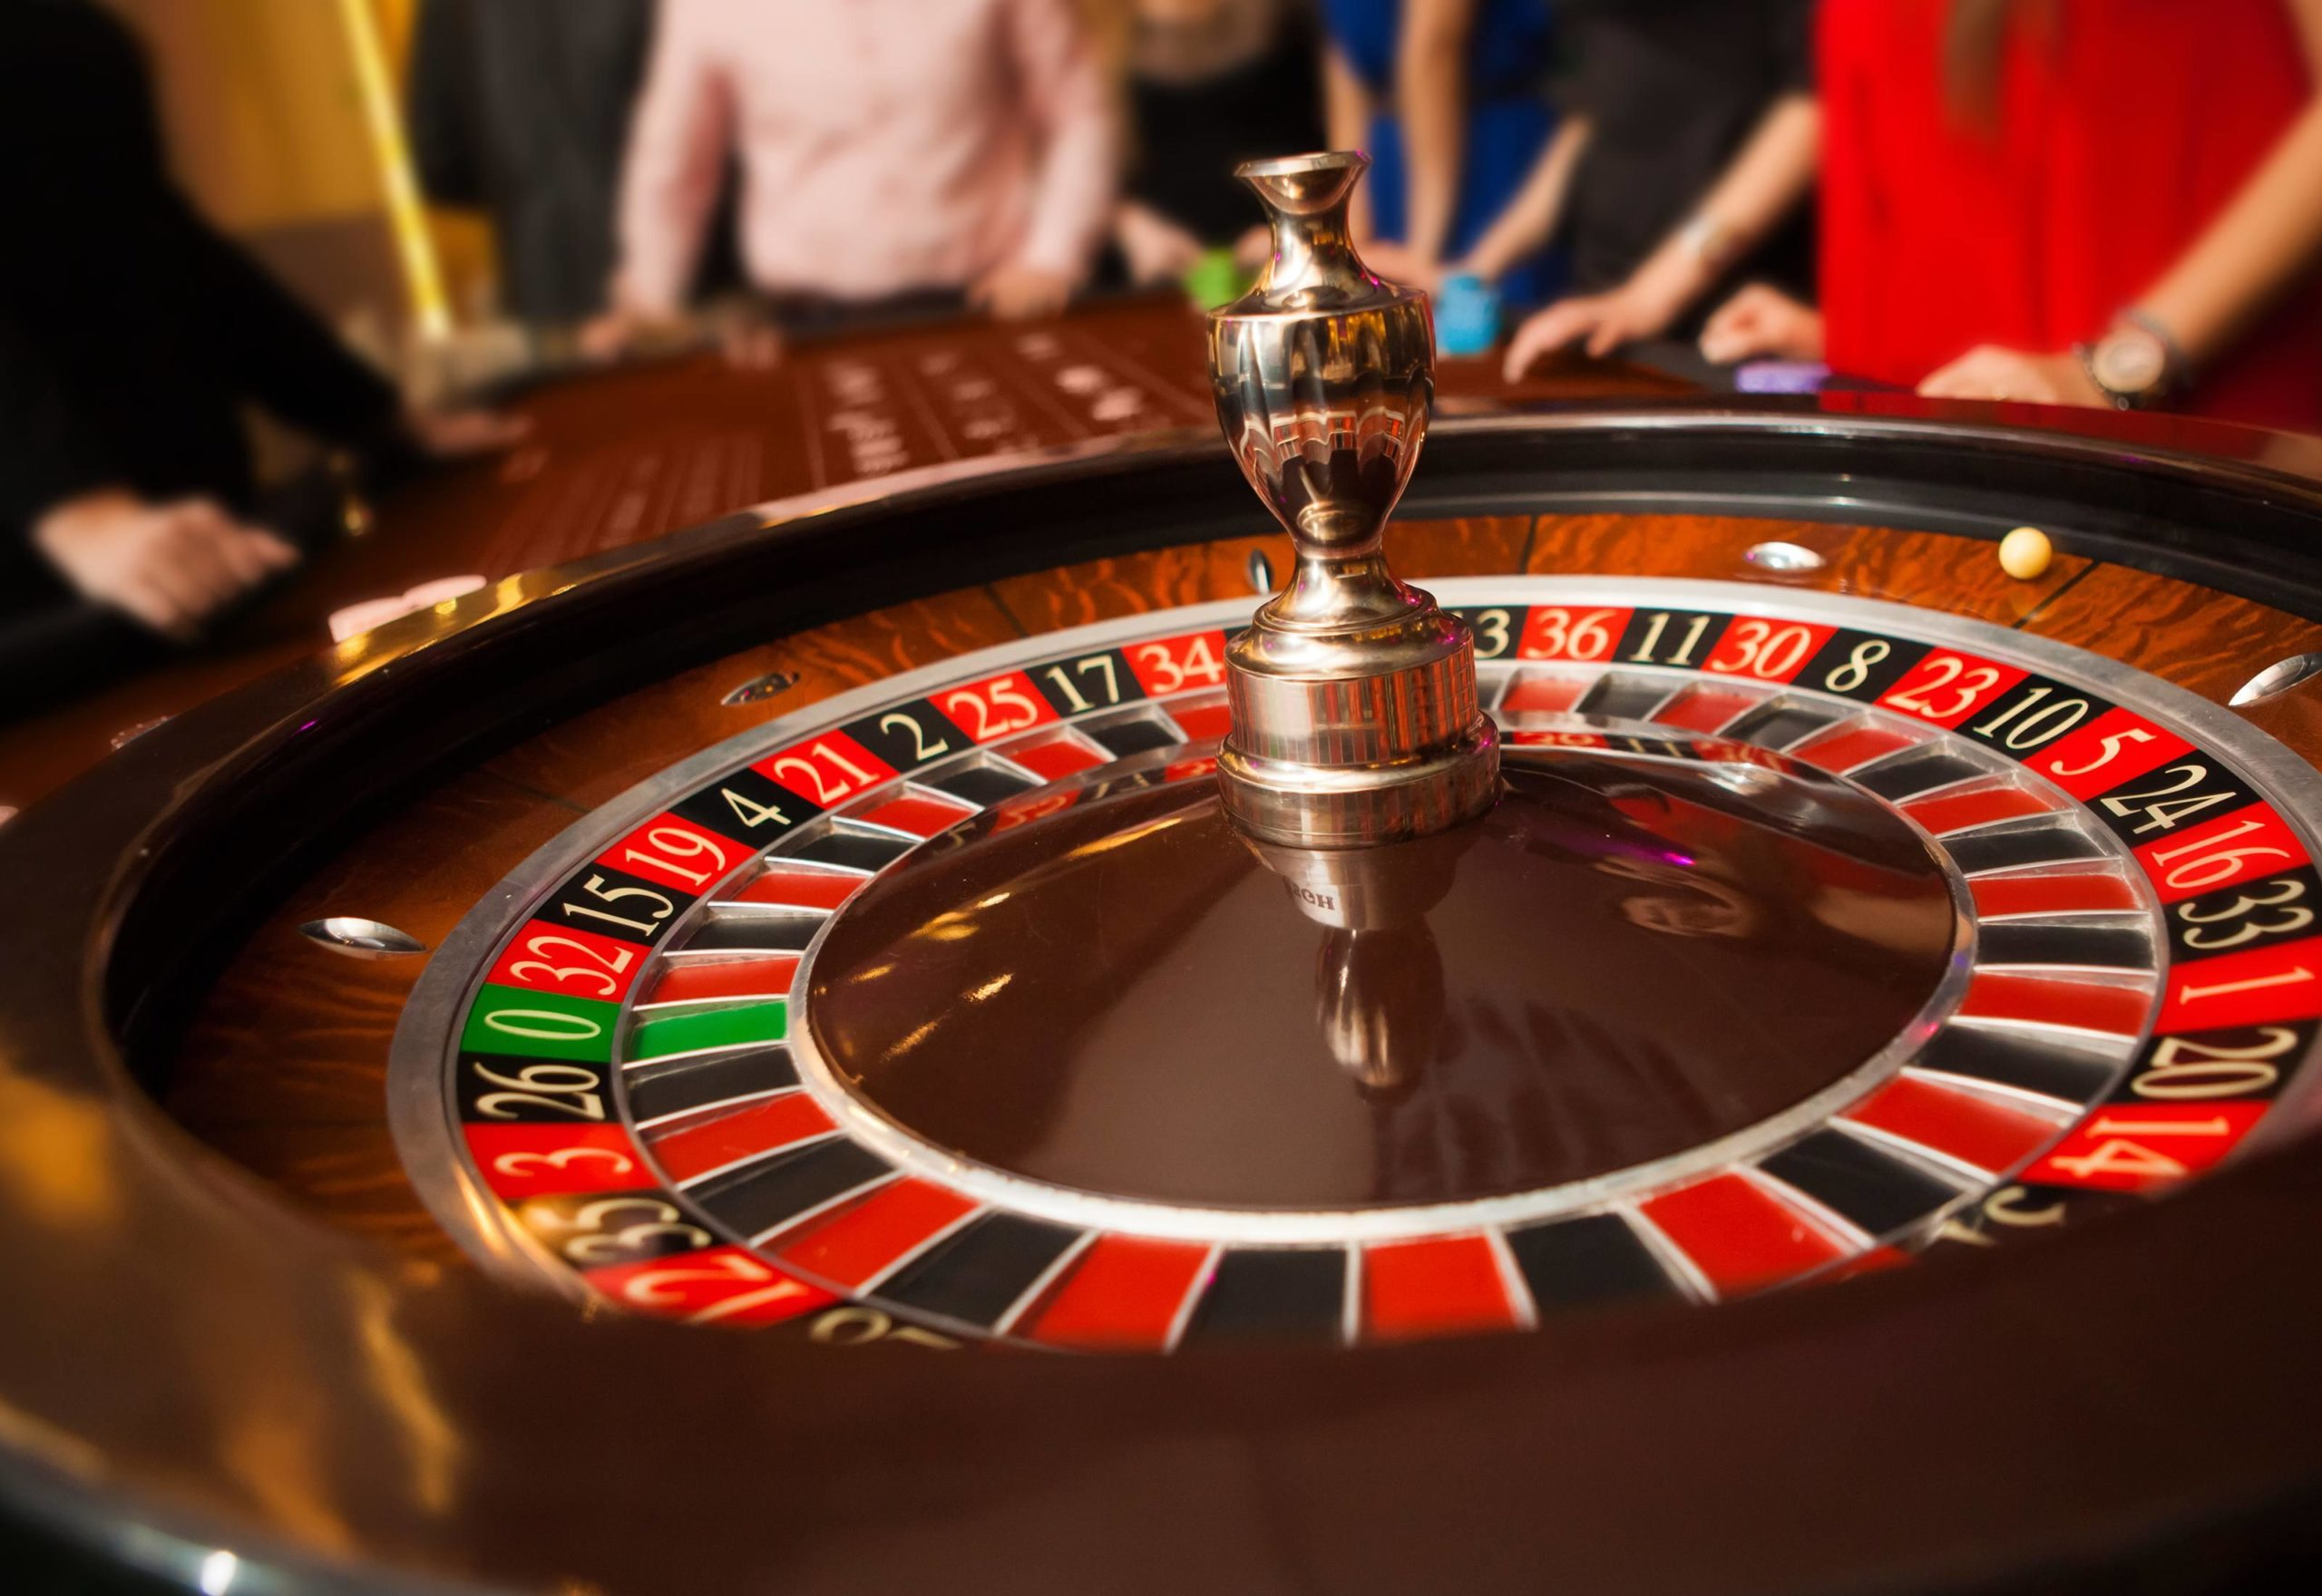 Get Baccarat Minimum 10 Baht Easily Online: The 21st Century Way Of Lottery